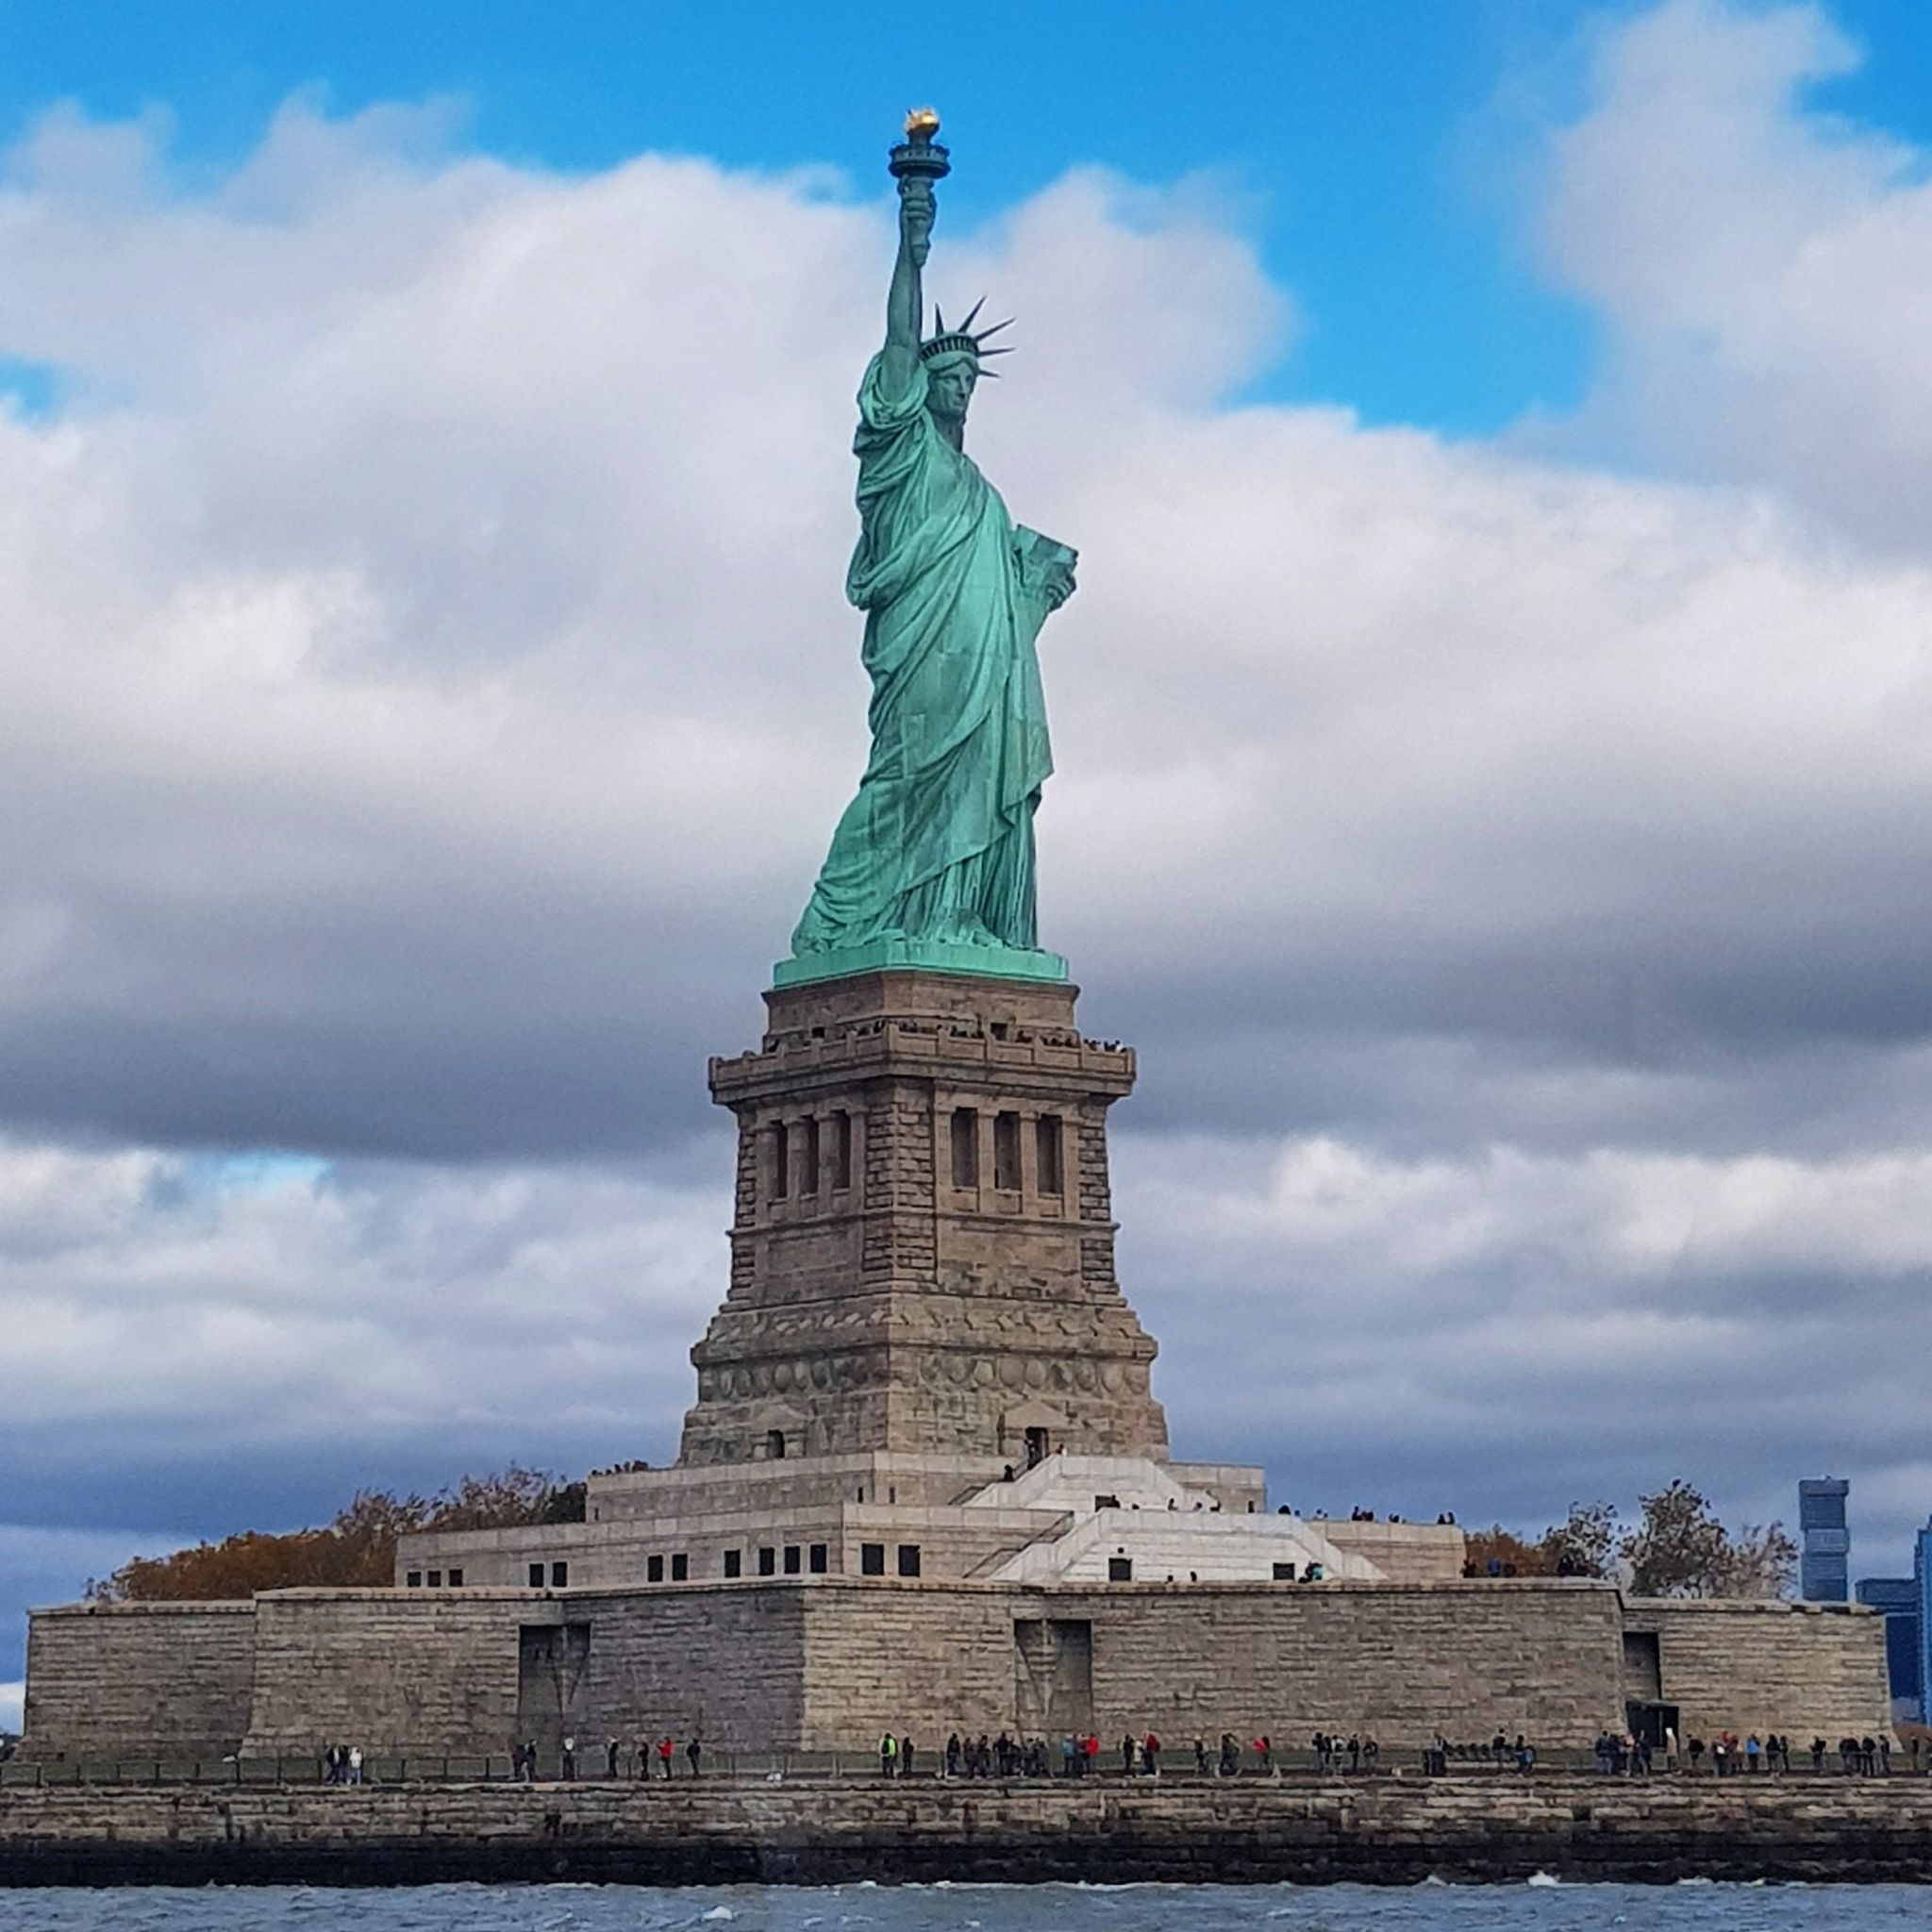 LADY LIBERTY, THE STATUE OF LIBERTY, LIBERTY ISLAND, MANHATTAN, New York, New York CITY